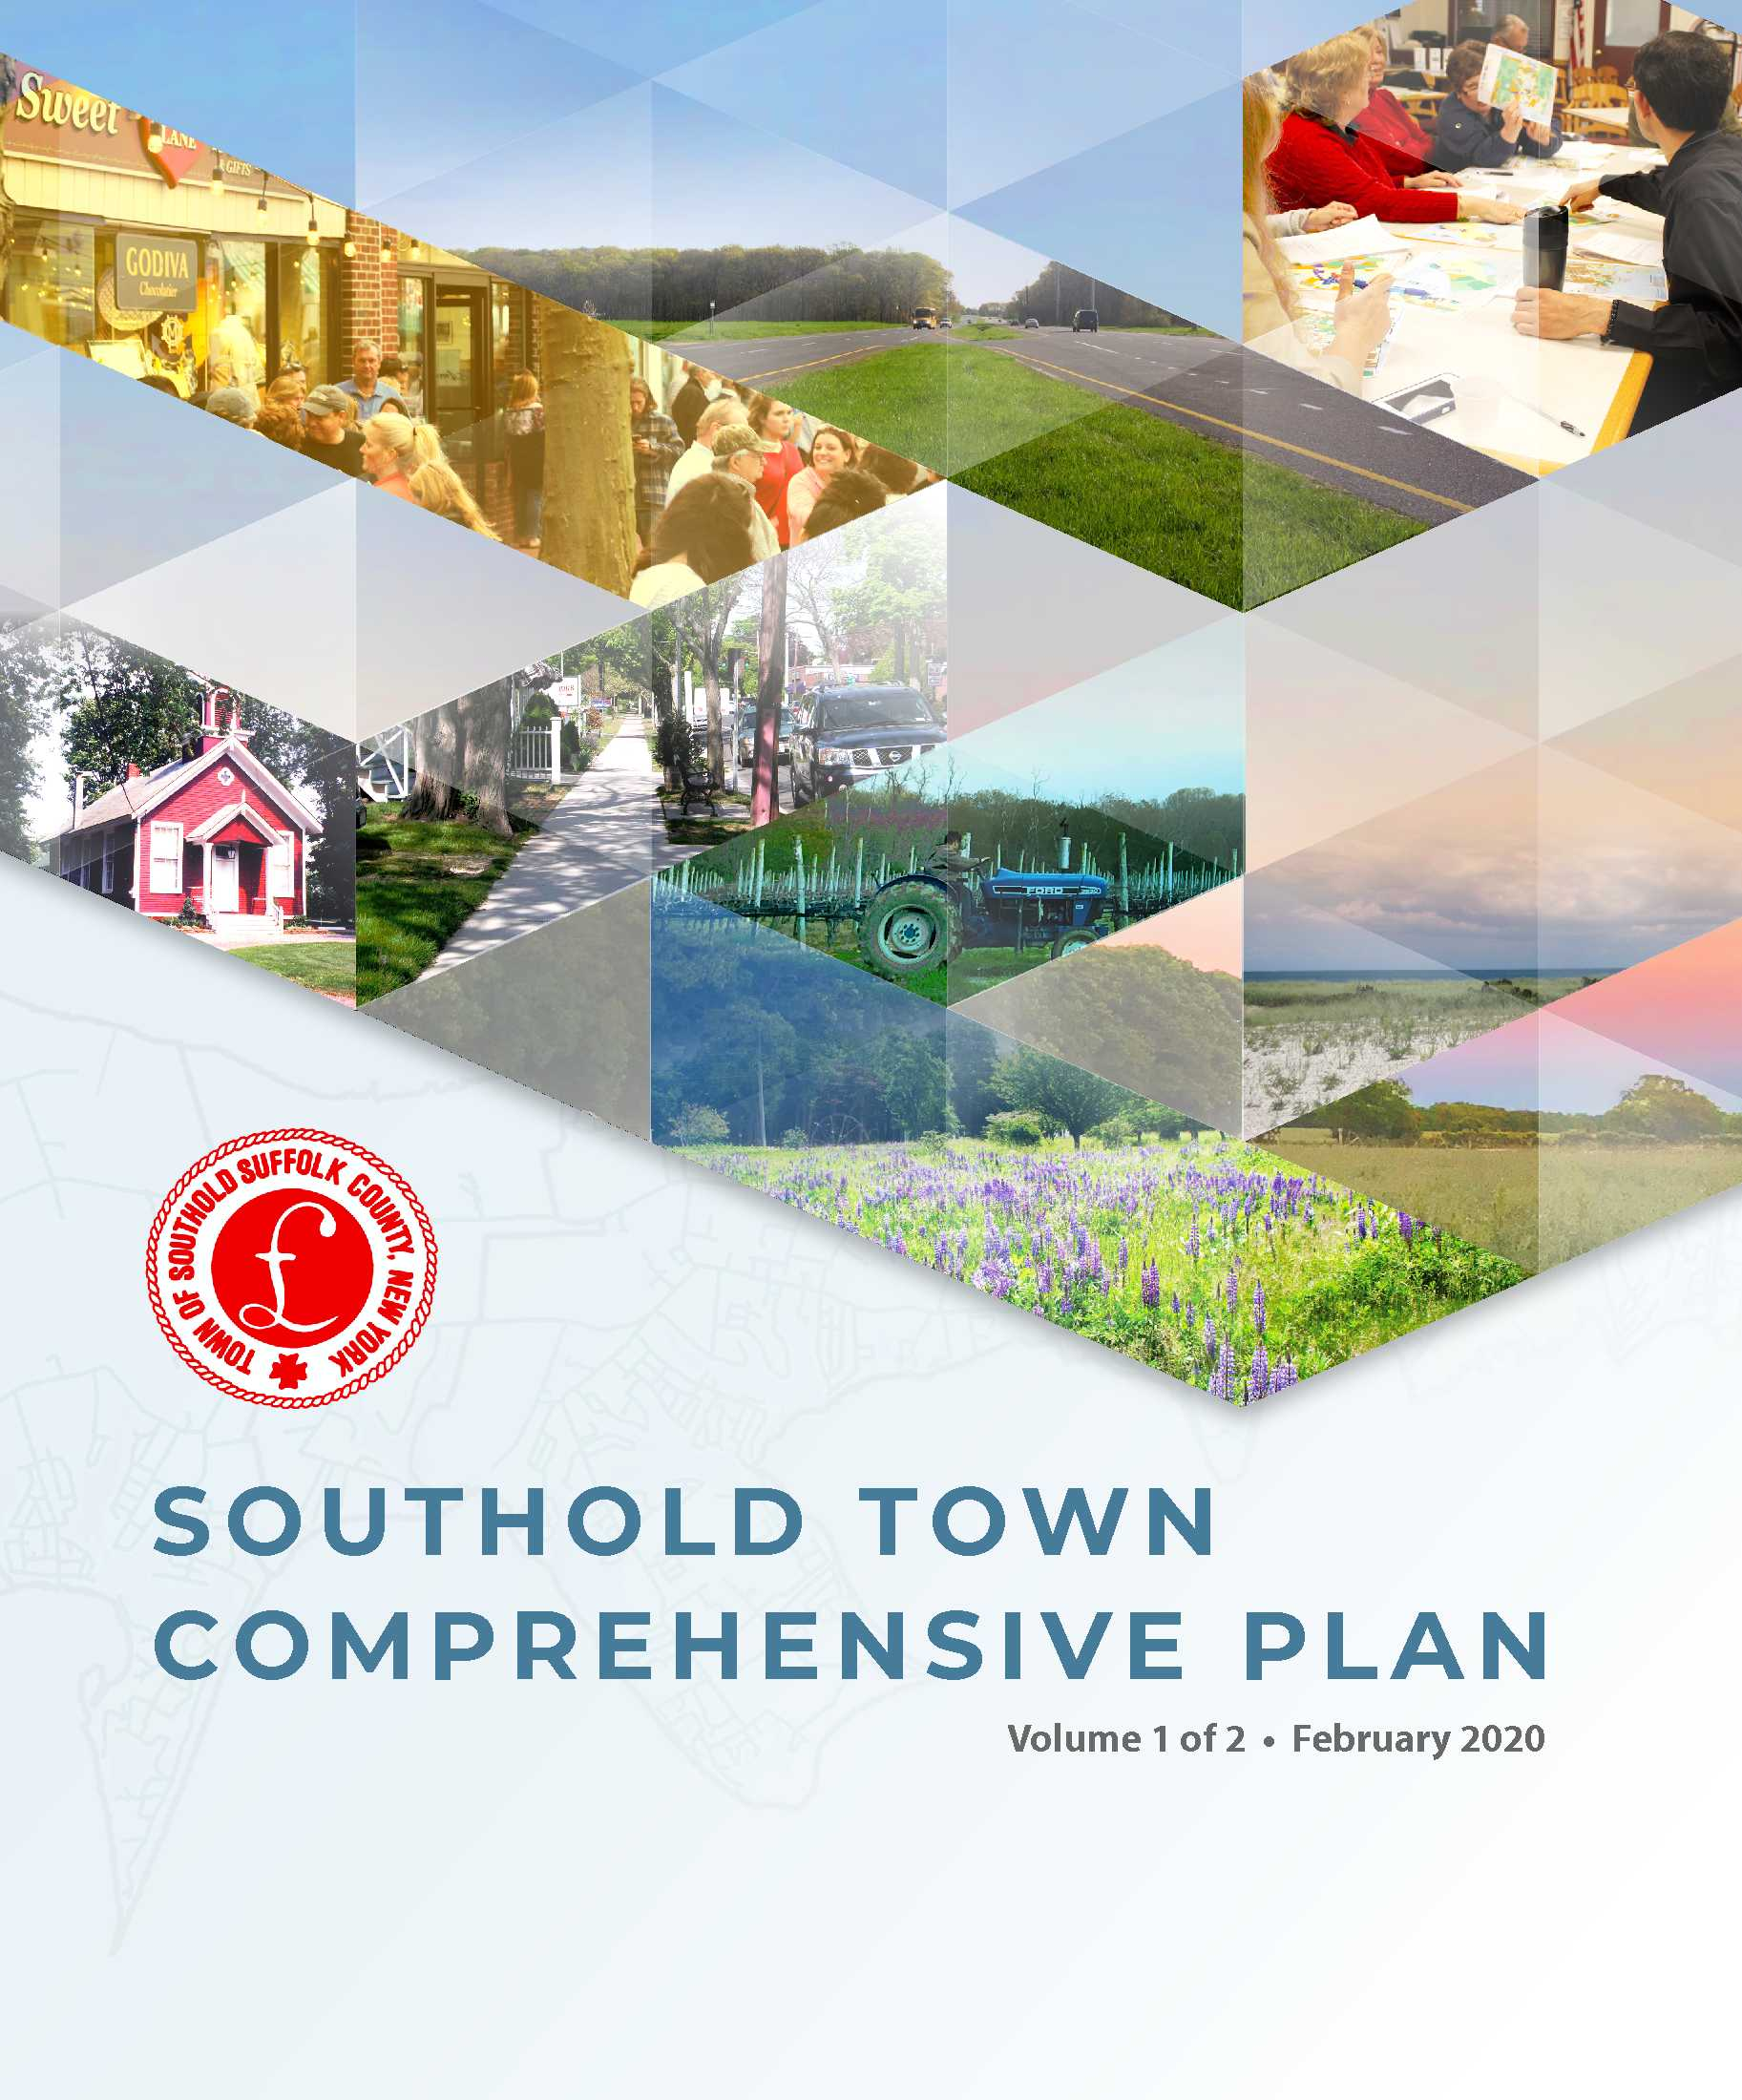 Cover Page for the Southold Town Comprehensive Plan